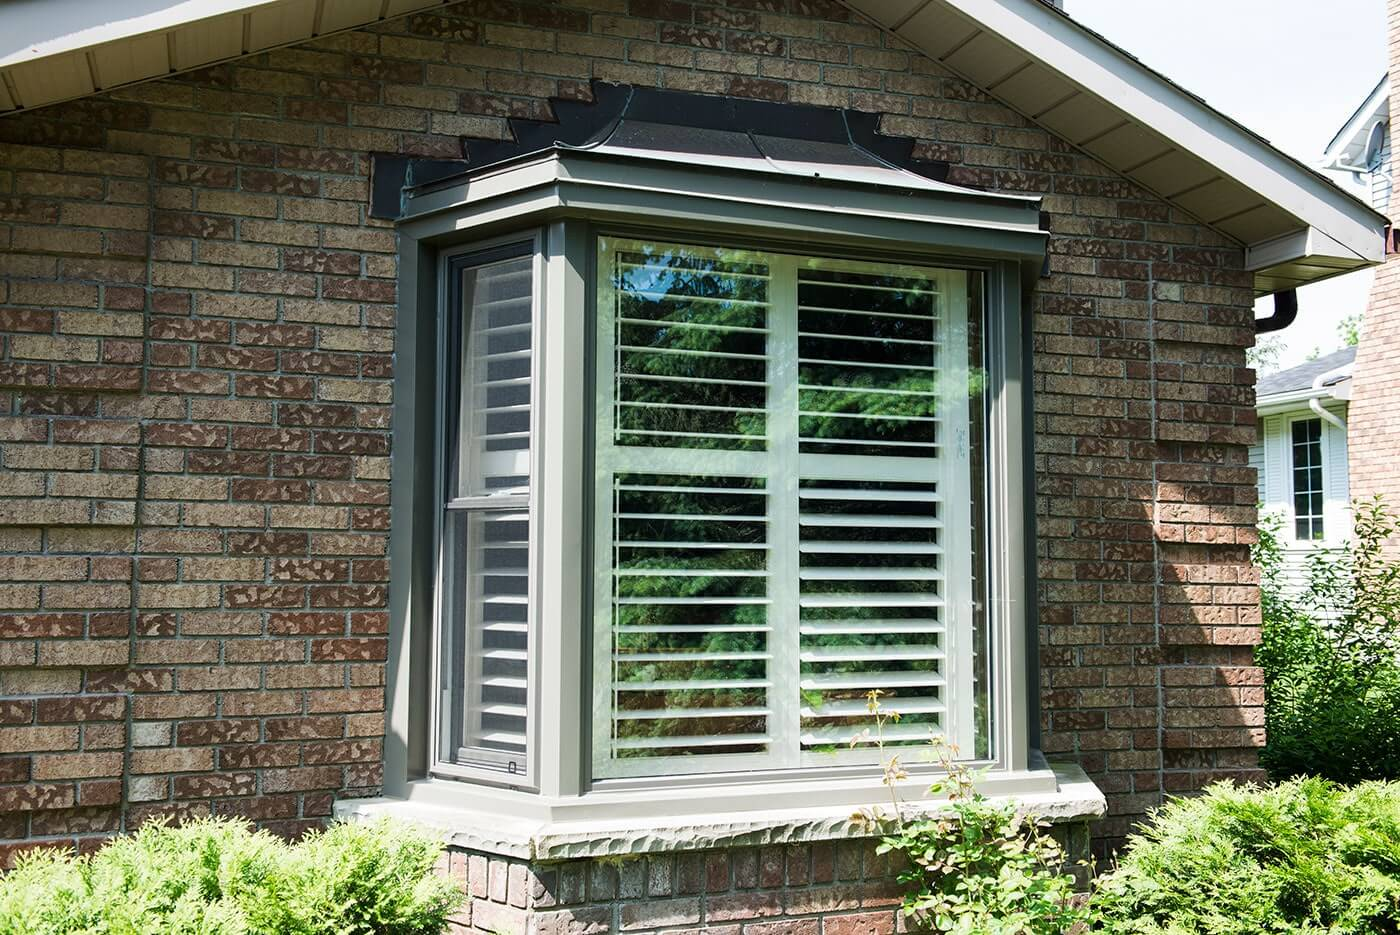 Custom Made Bay Window With Dark Grey Trim On The Side of Brick Home